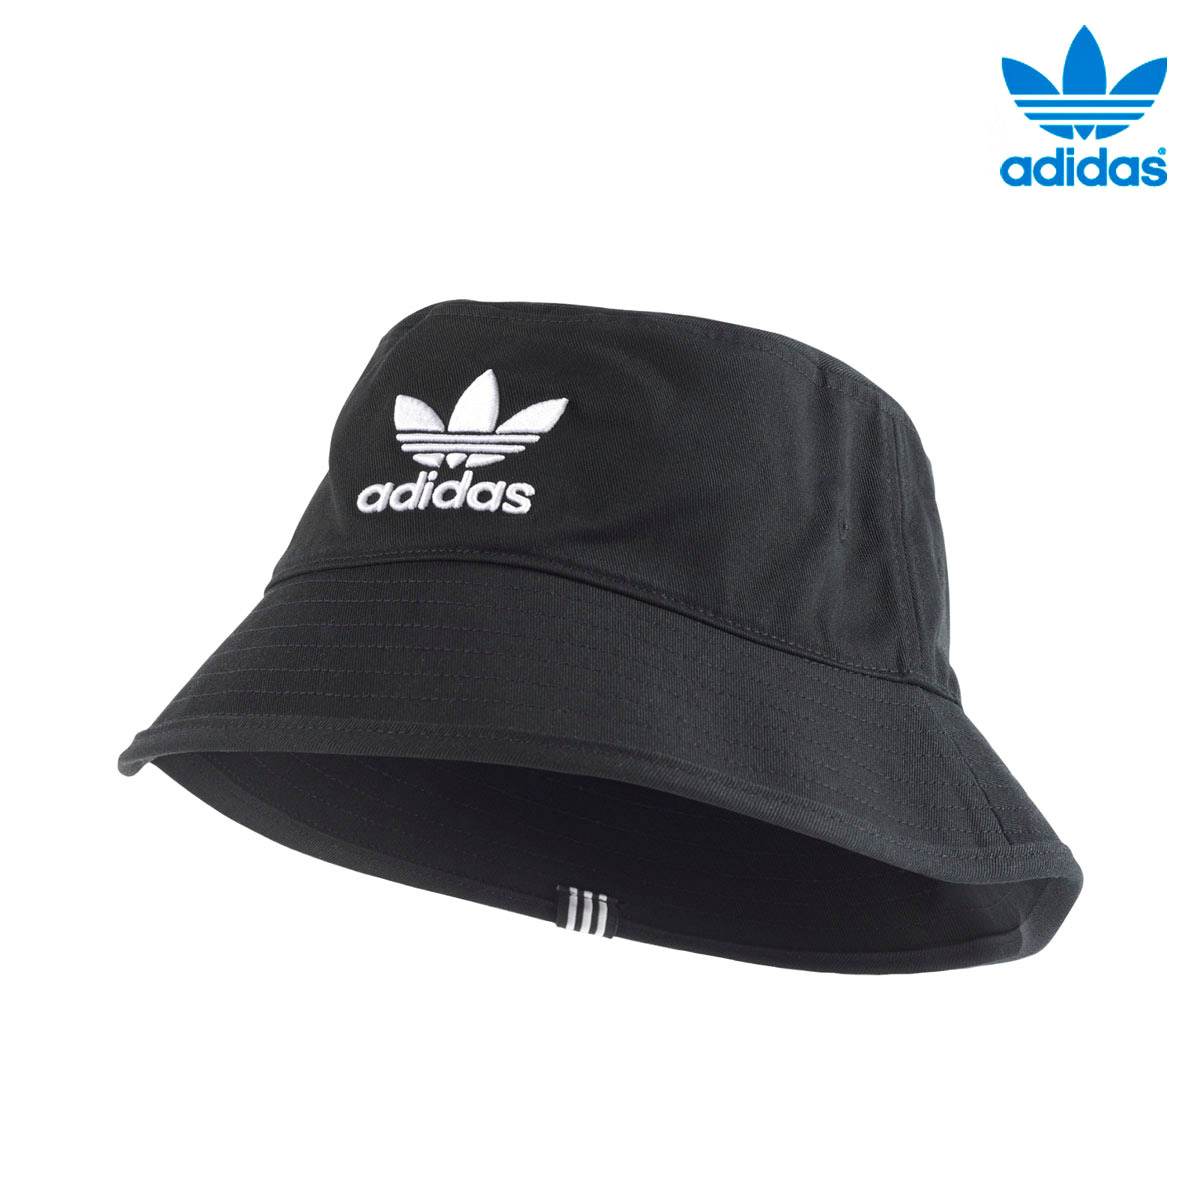 adidas Originals BUCKET HAT AC (Adidas original Suva blanket hat AC) BLACK  18SS-I 252566a21b3